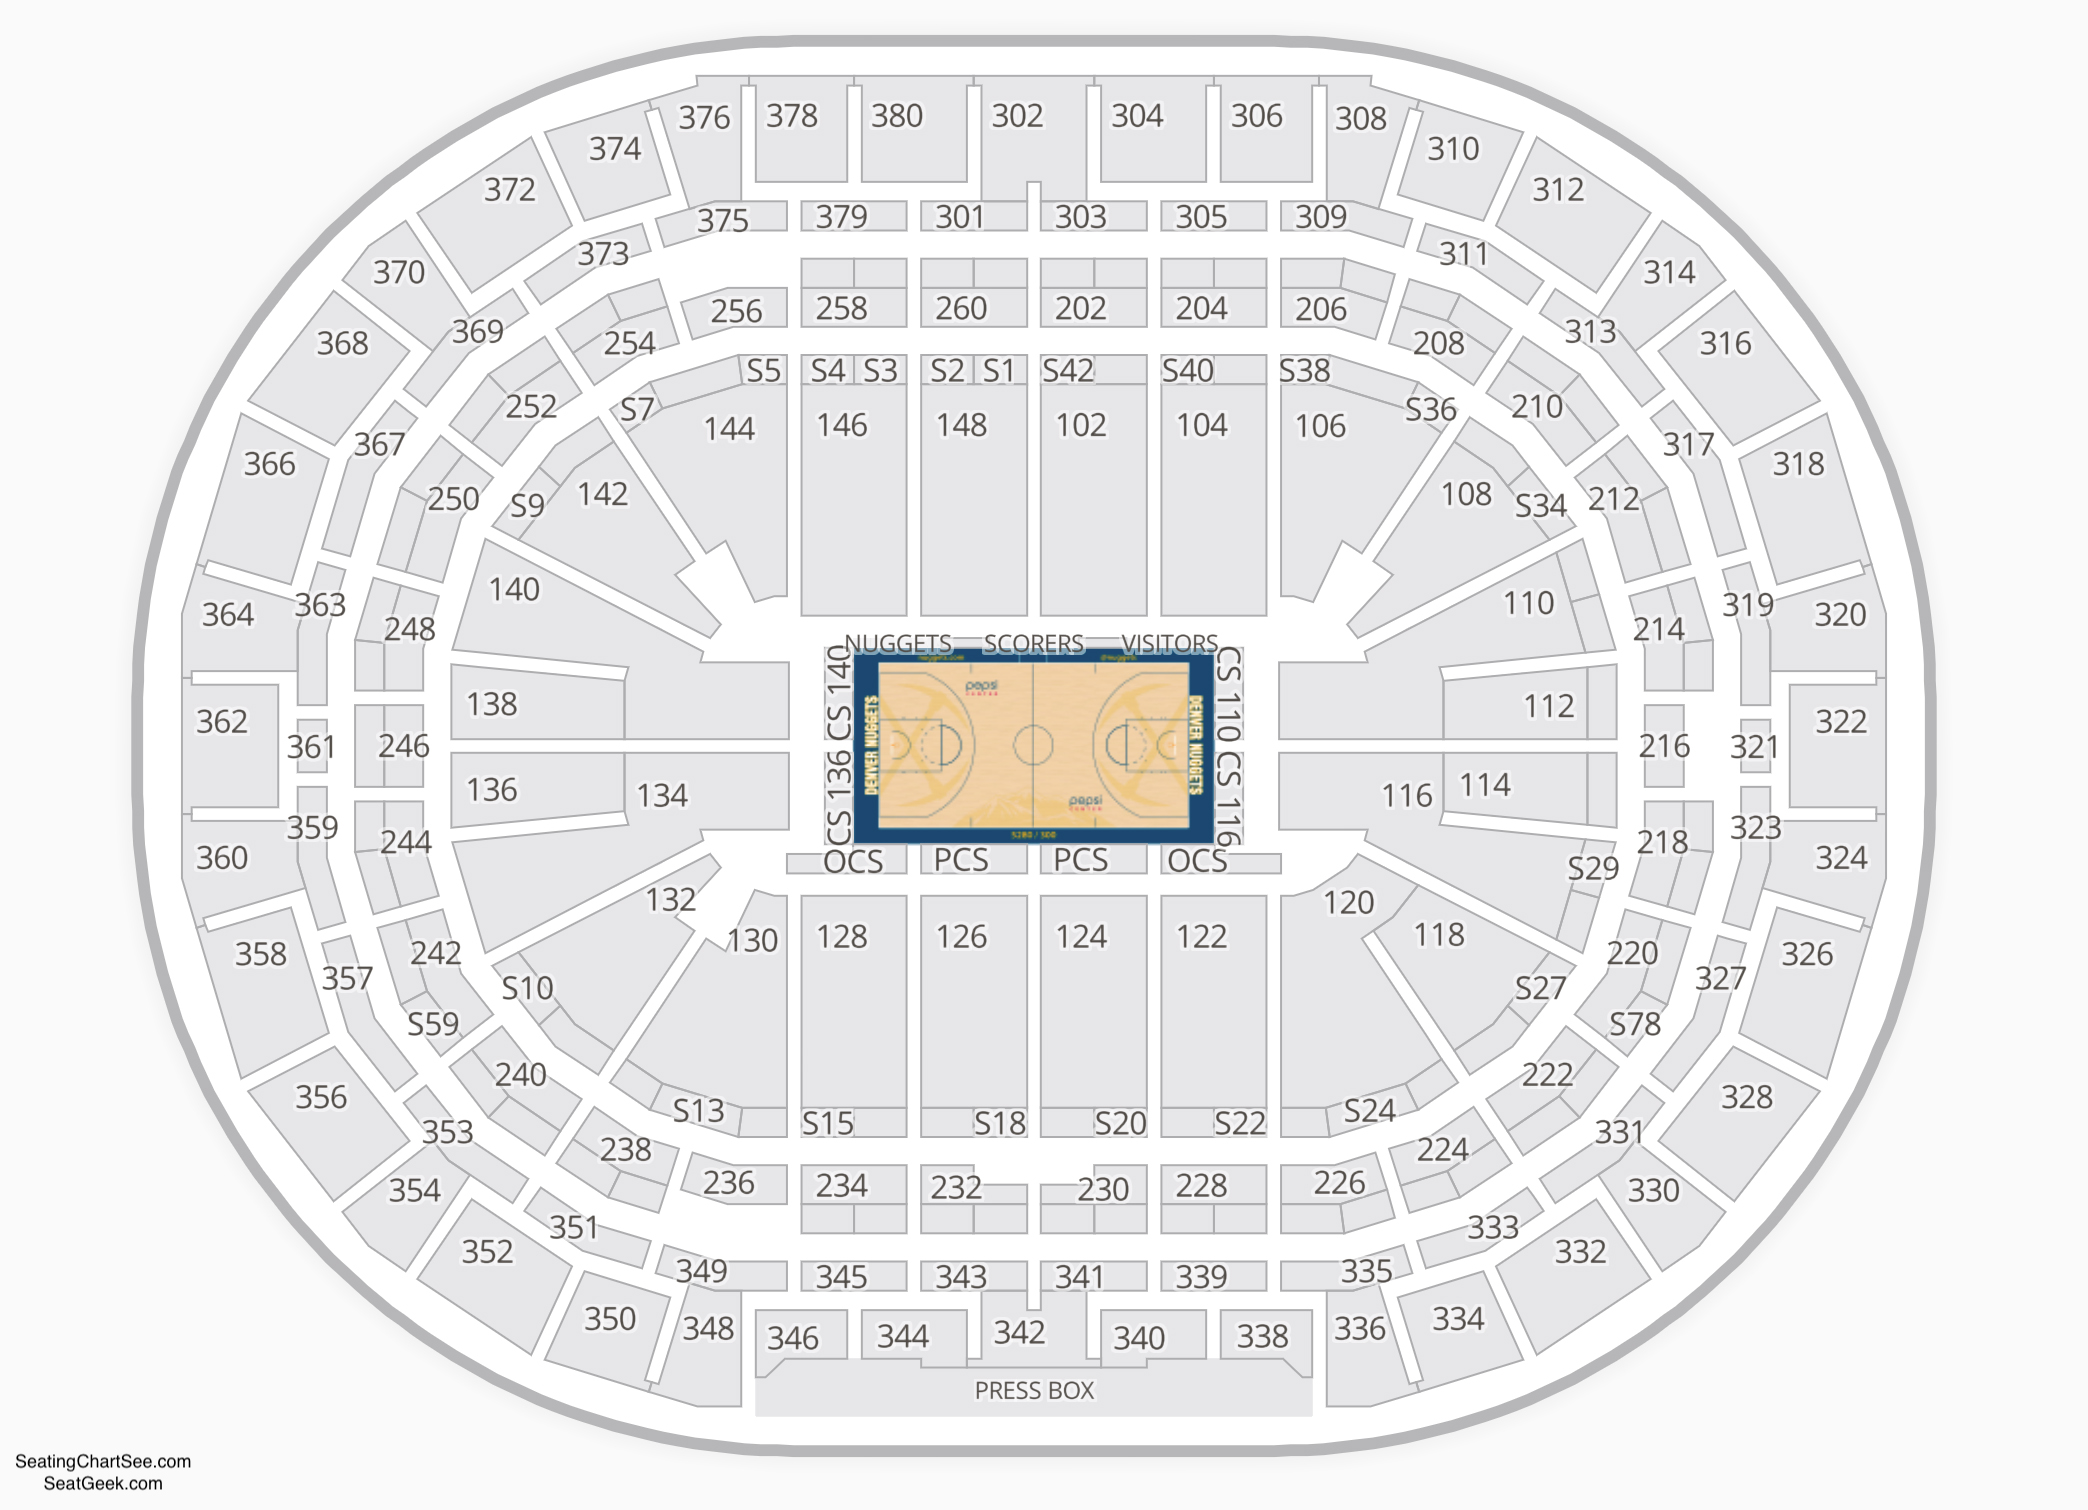 Denver Nuggets Seating Chart